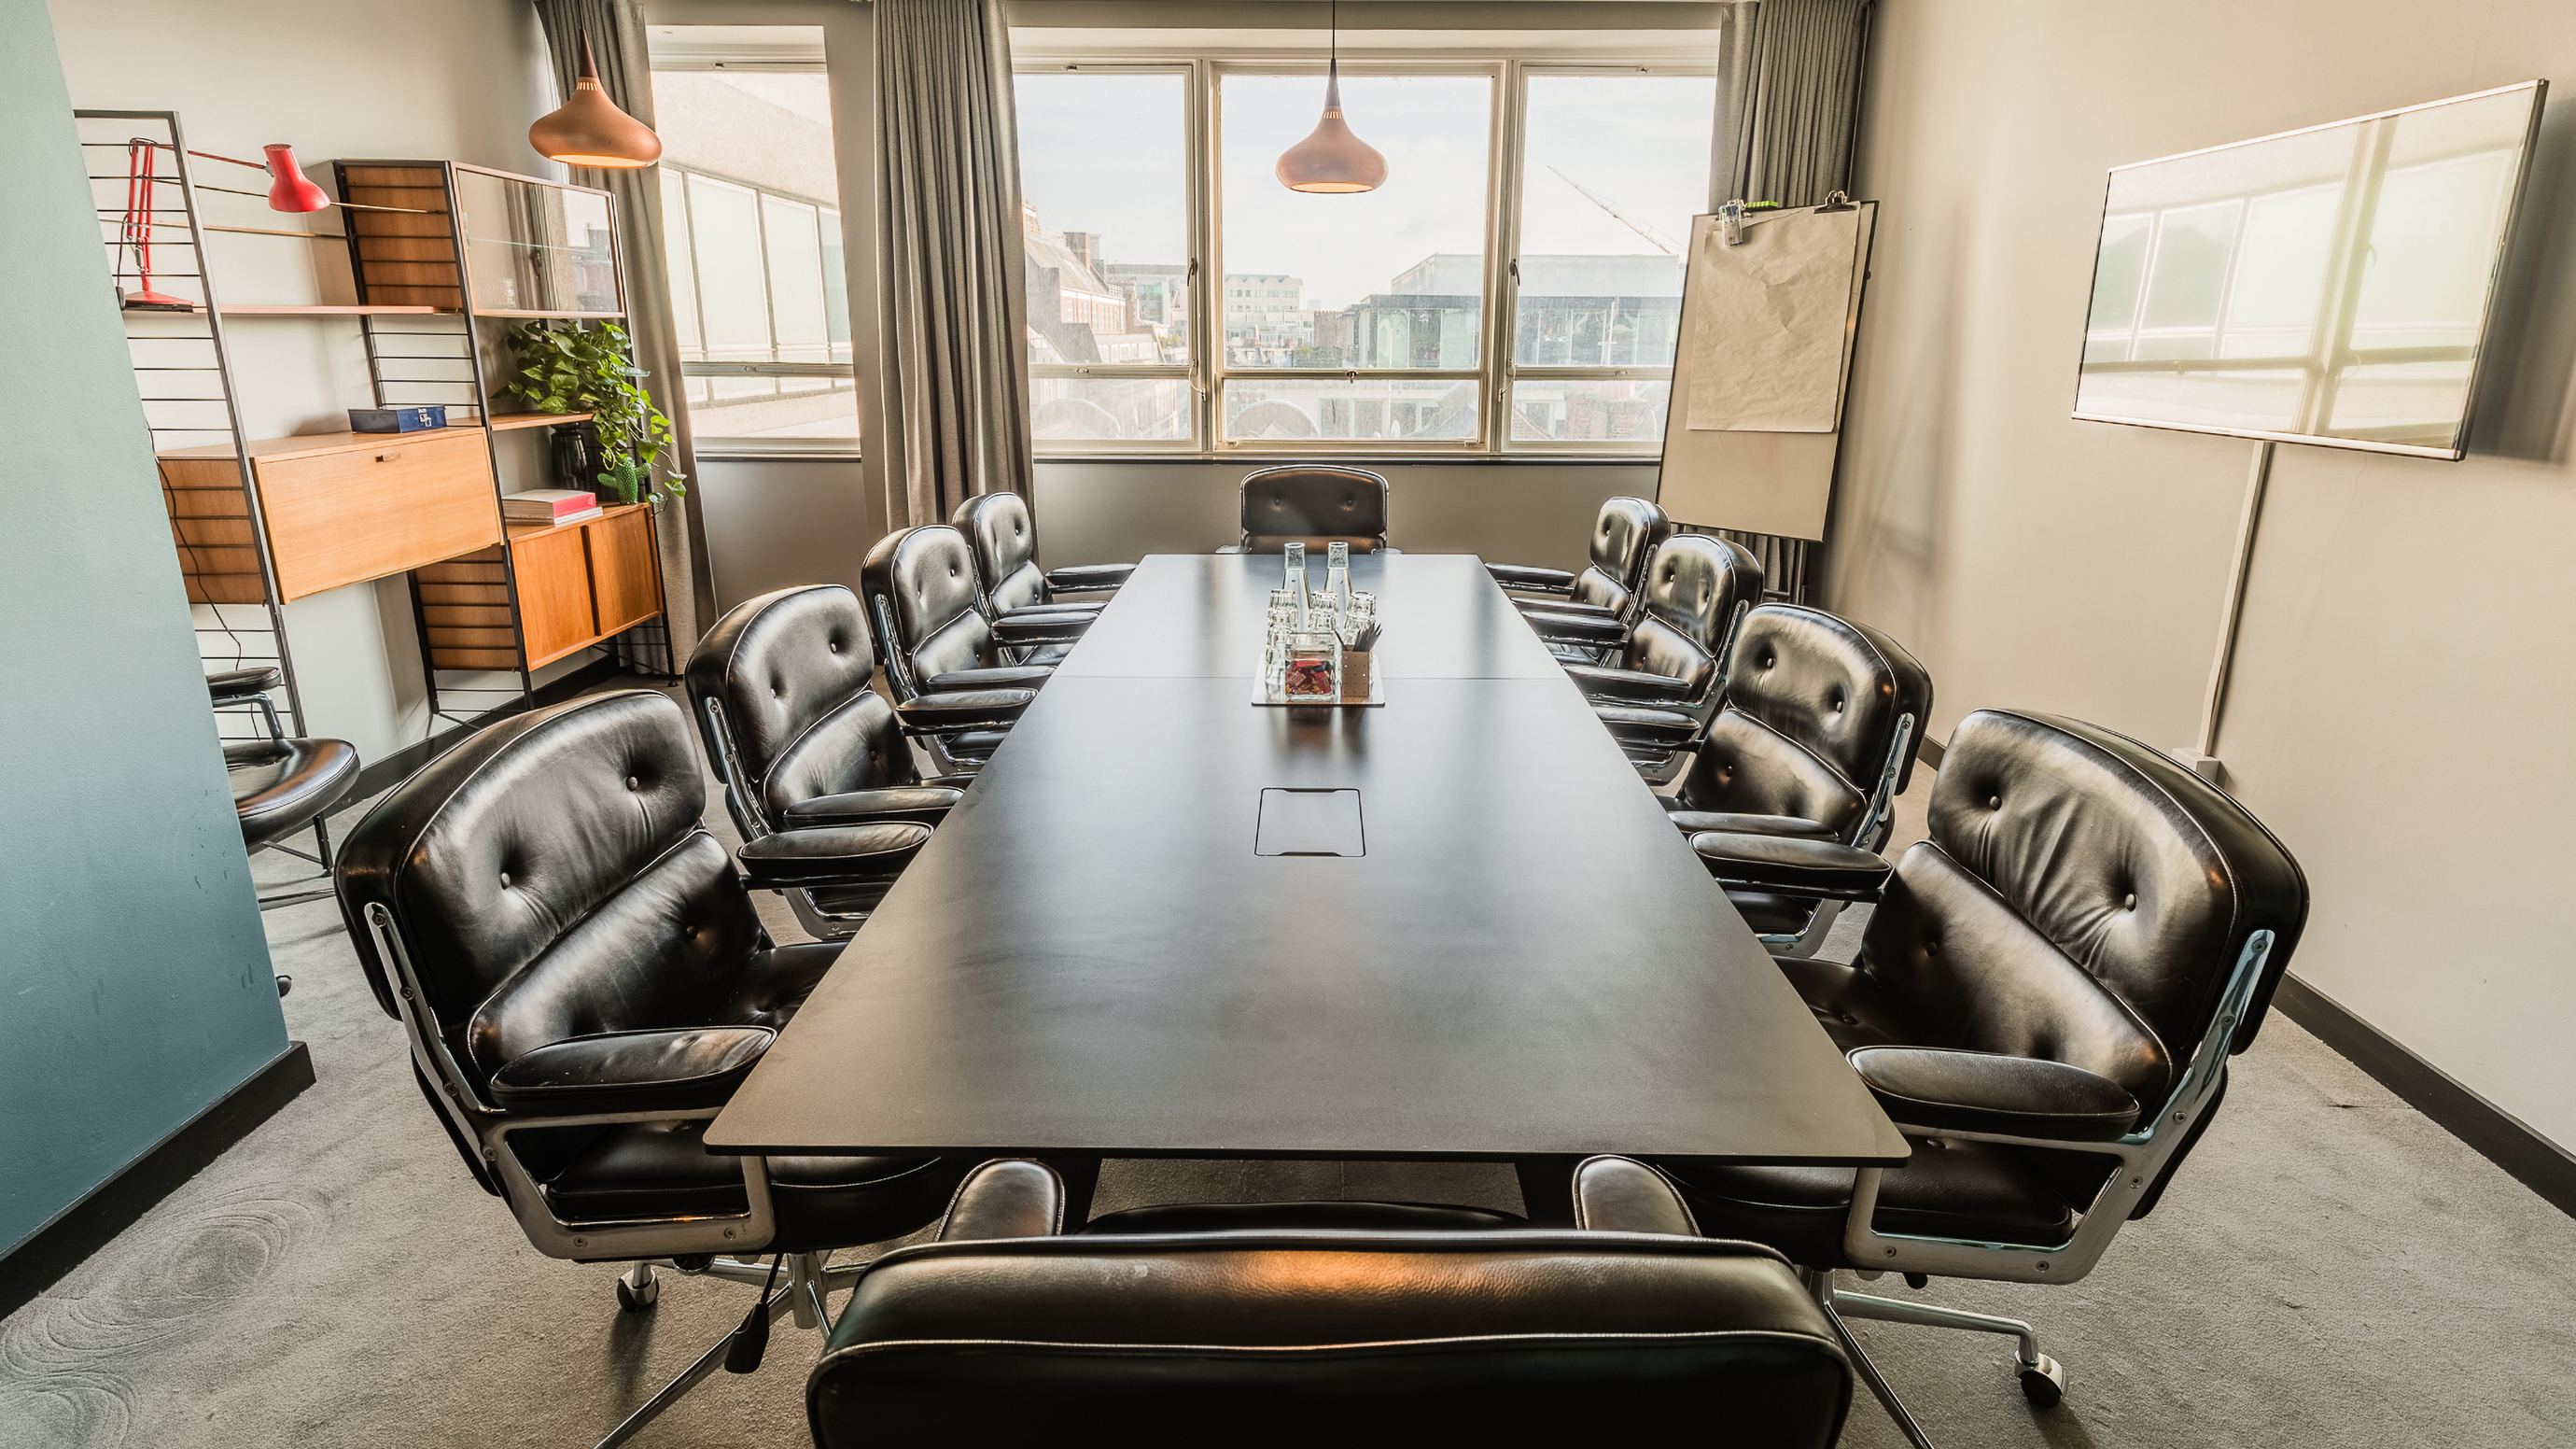 Medium meeting room with rectangular black table and leather chairs at TOG building Henry Wood House London